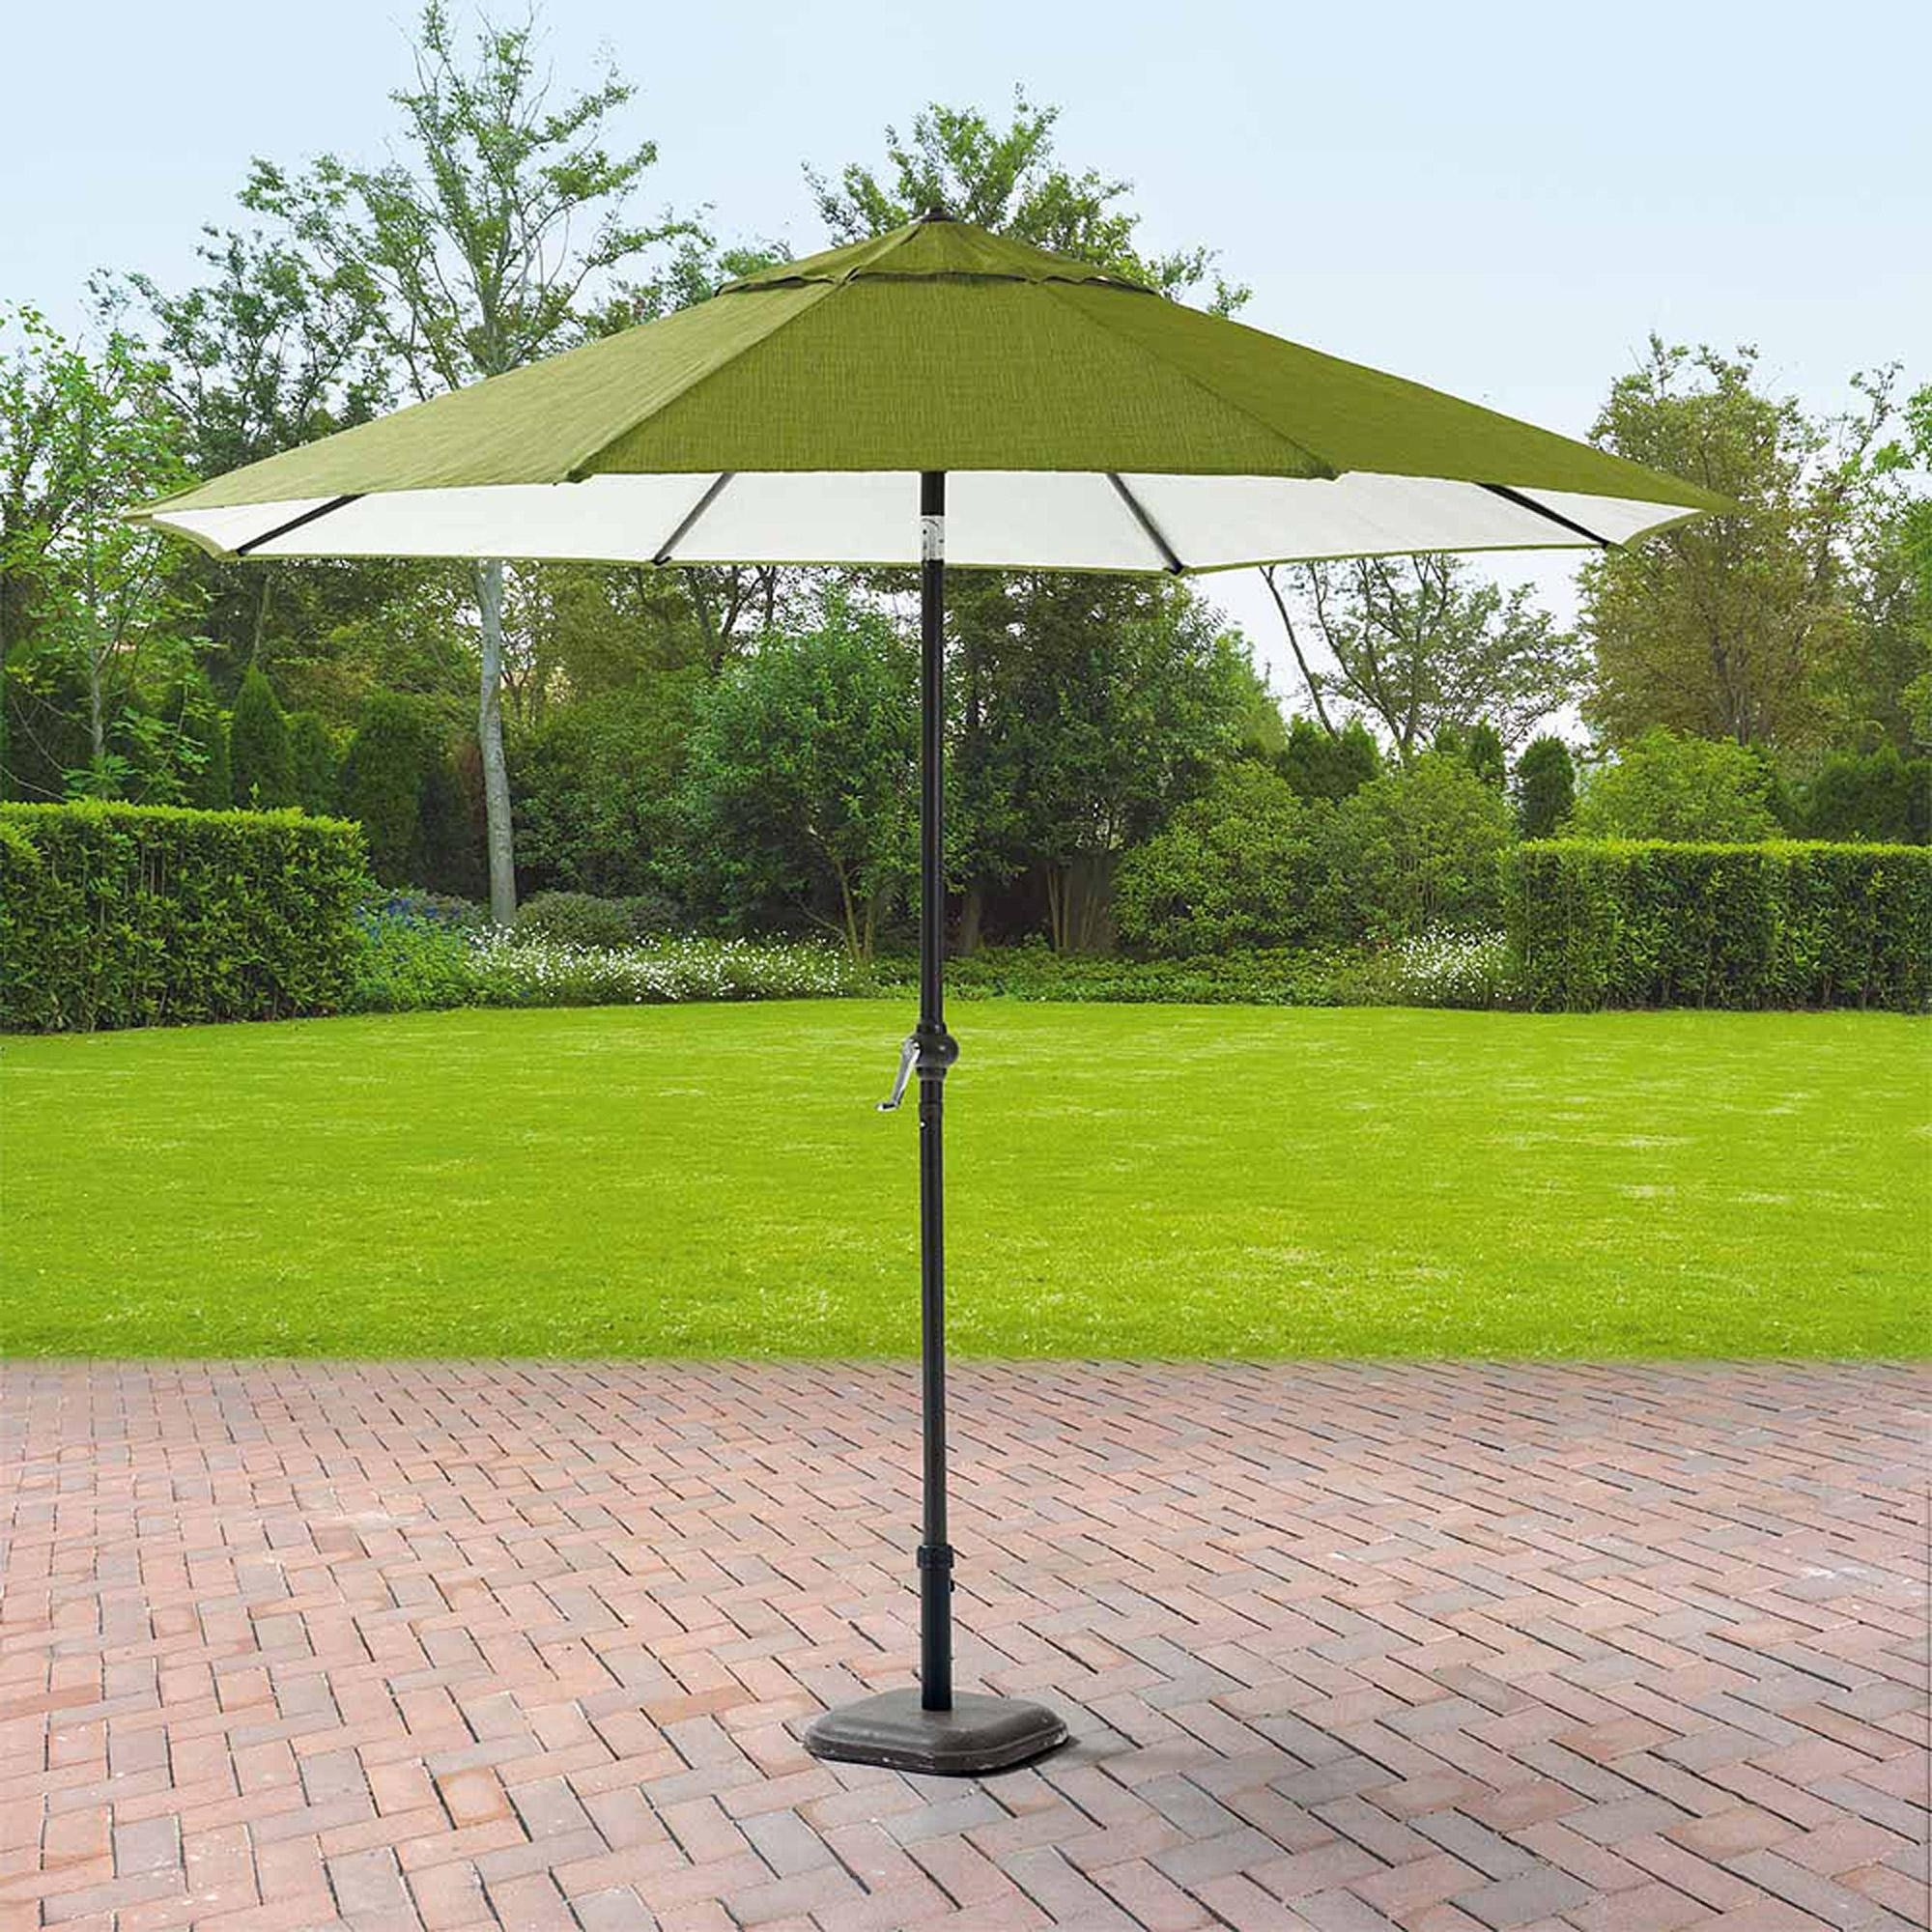 Fashionable Patio Umbrellas Walmart – Home Design Ideas Inside Sunbrella Patio Umbrellas At Walmart (View 4 of 20)